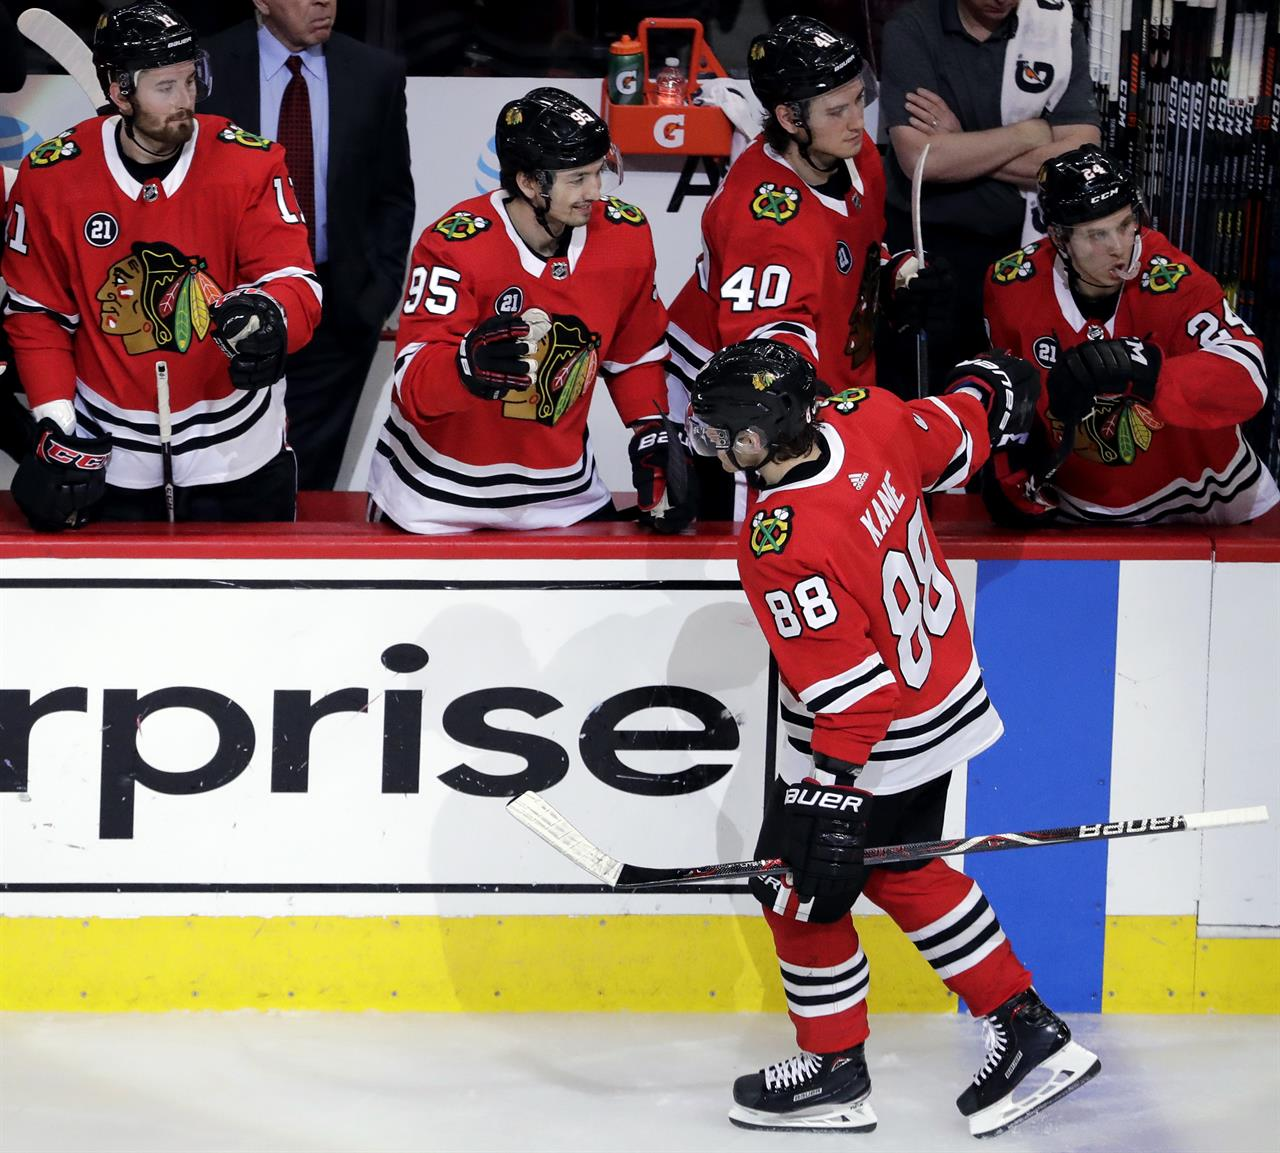 buy popular c9e63 3a2a1 ... gets hat trick to lift Blackhawks over Wild 5-2. Chicago Blackhawks  right wing Patrick Kane (88) celebrates with teammates after scoring his  second goal ...